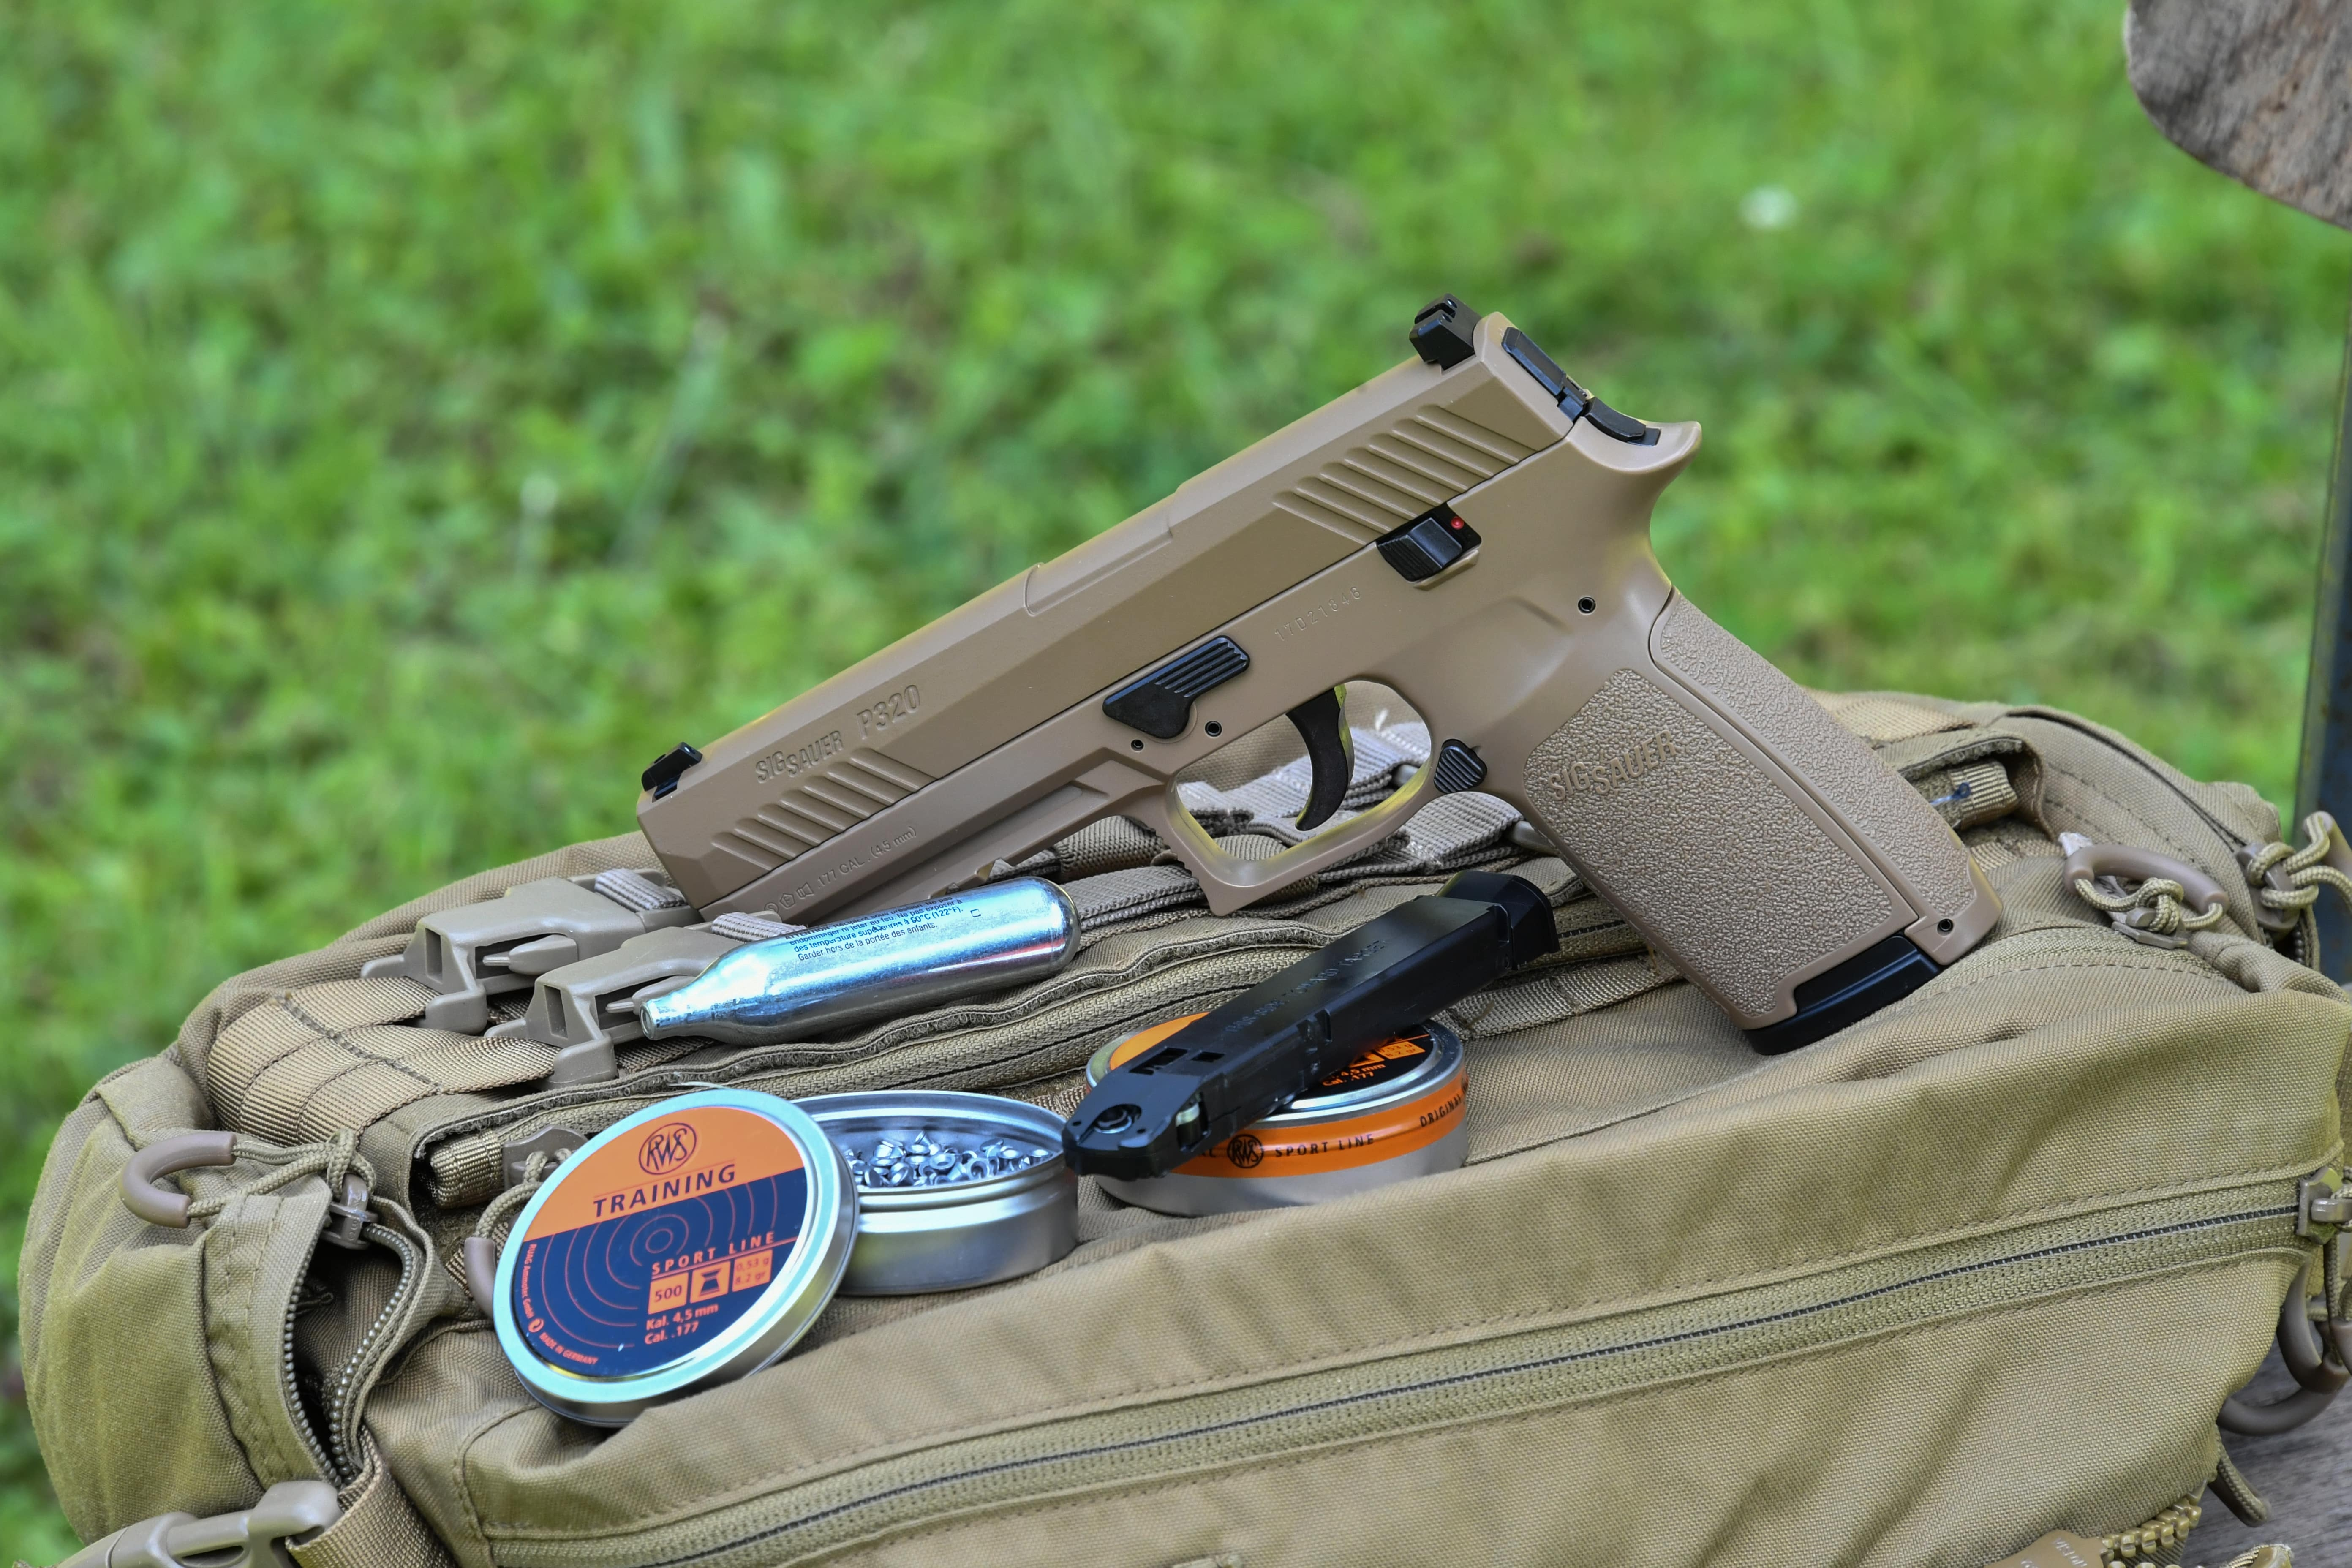 sig-sauer: SIG Sauer P320 ASP from GSG: how the air gun performed at the range